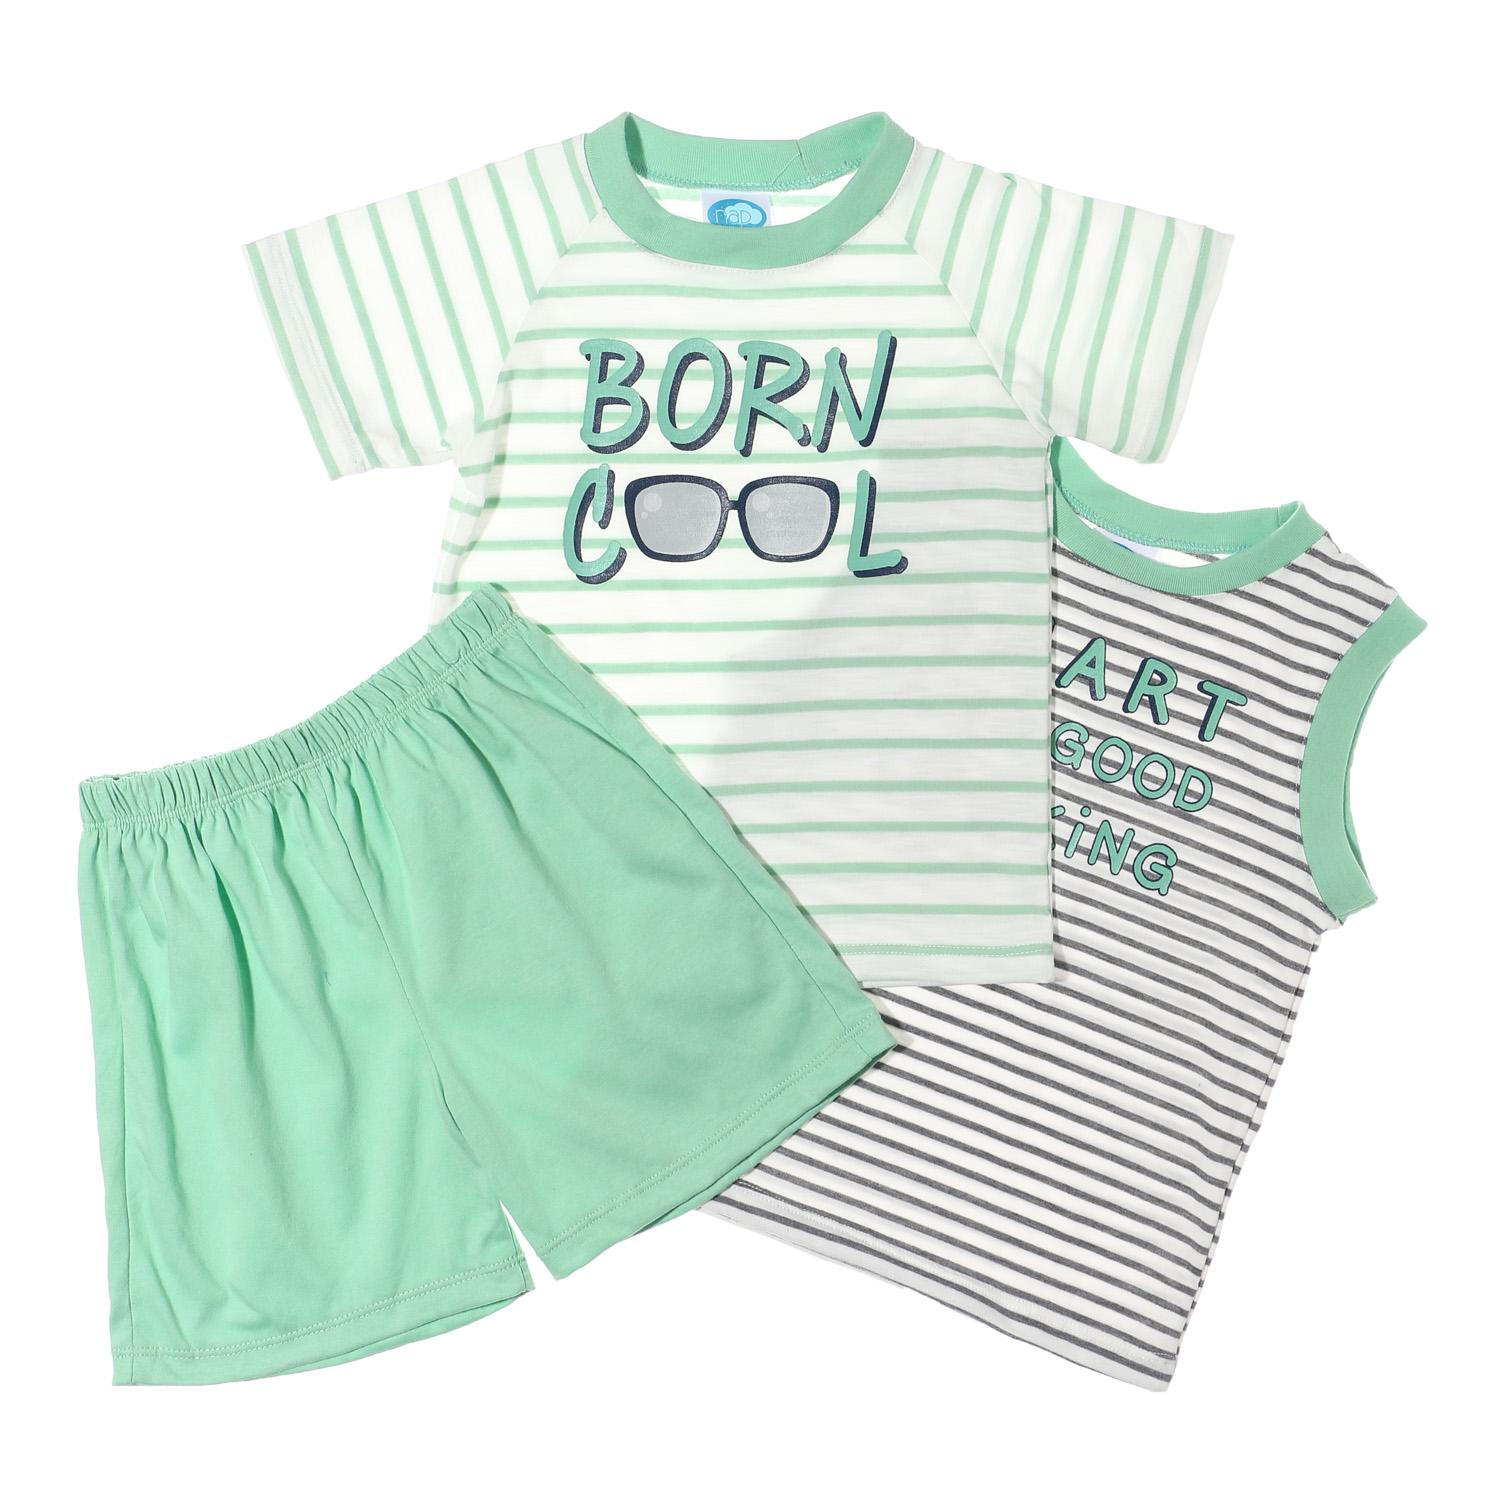 ebaa7db25 Baby Clothes for sale - Baby Clothing Online Deals & Prices in ...